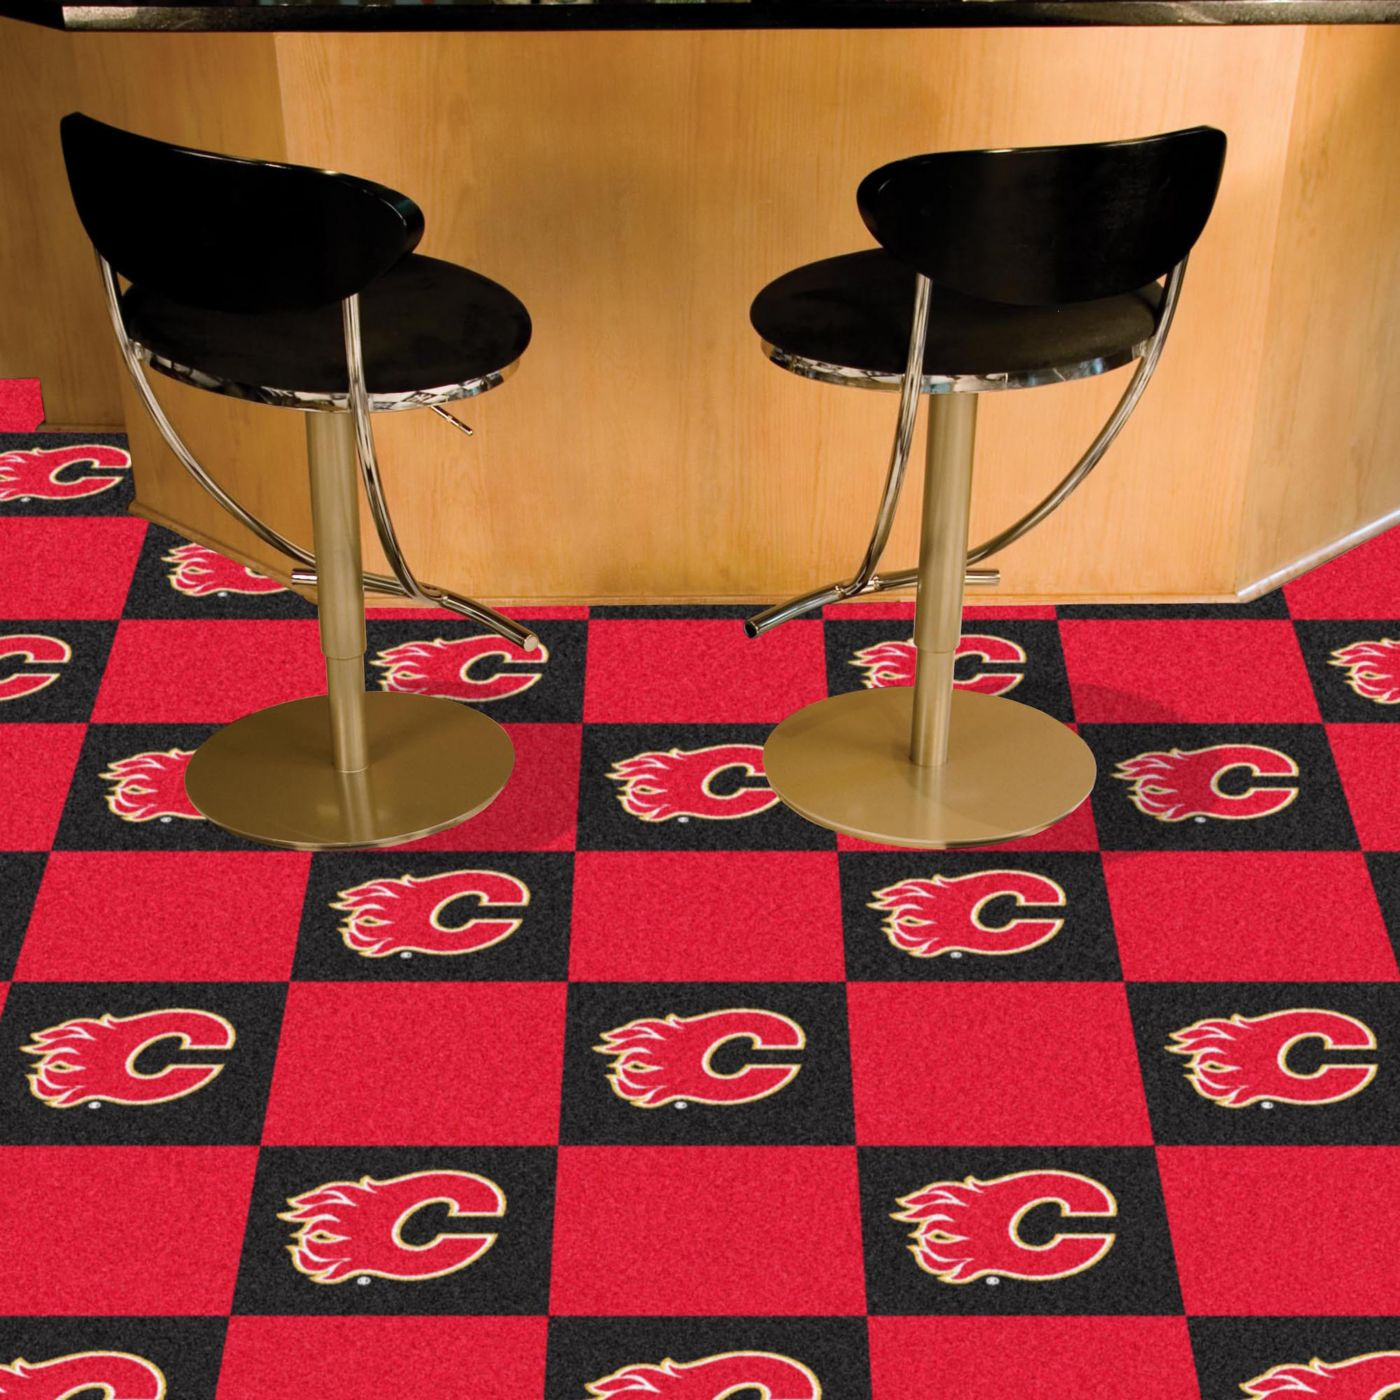 FANMATS Calgary Flames Carpet Tiles